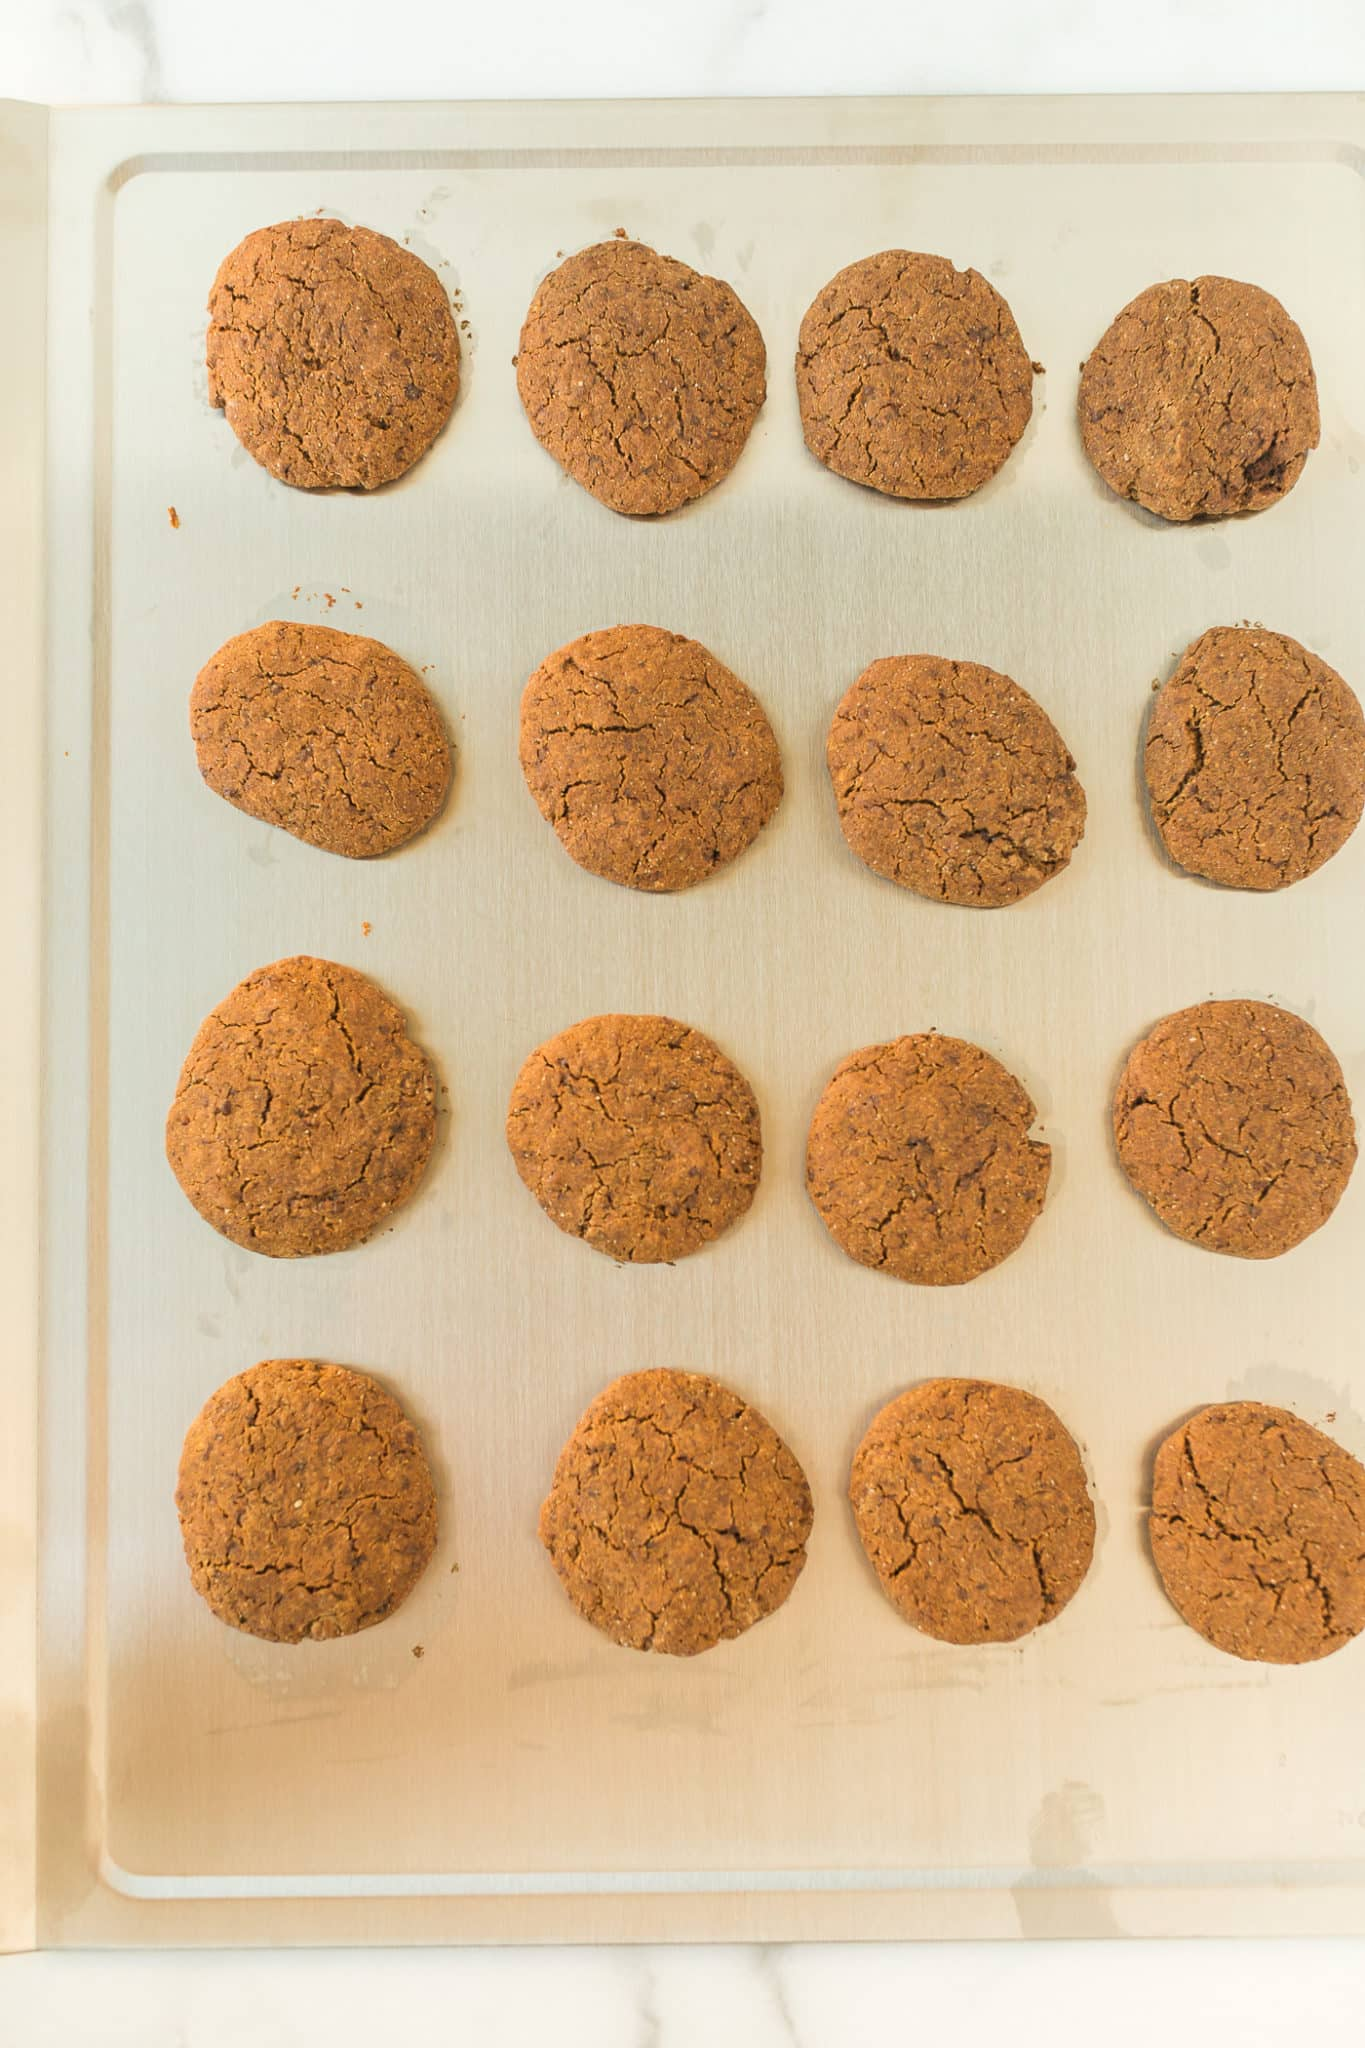 molasses cookies on a stainless steel baking sheet